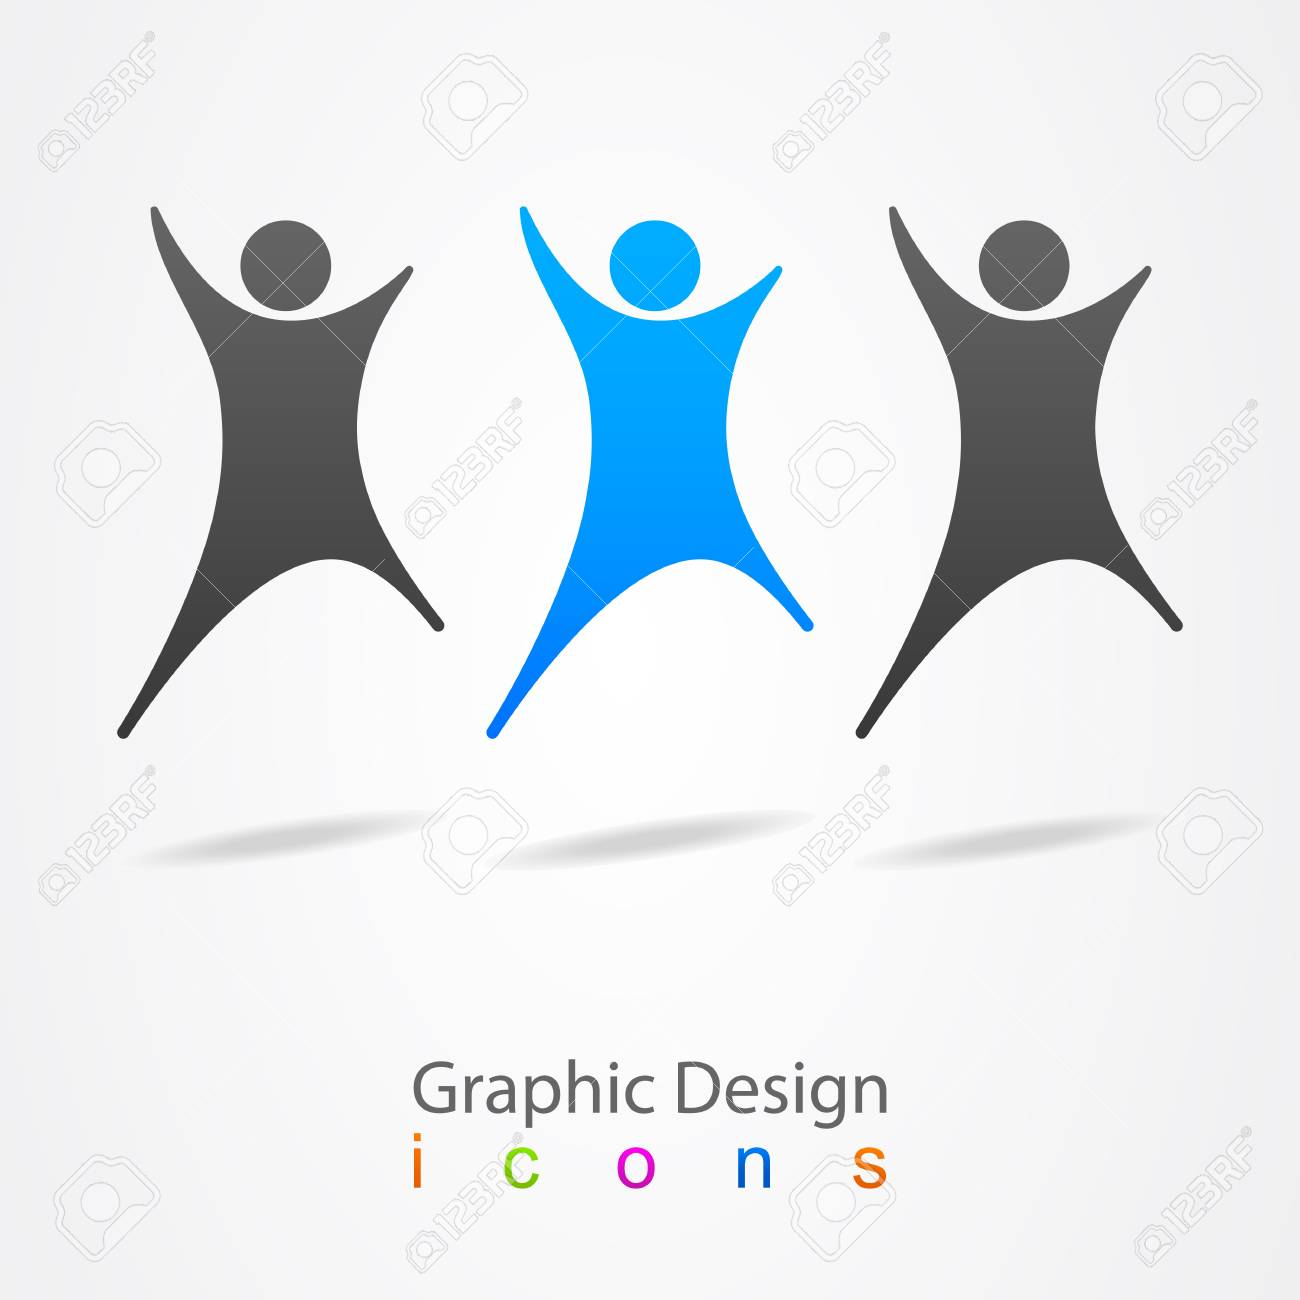 Graphic design social network group Stock Vector - 19557154